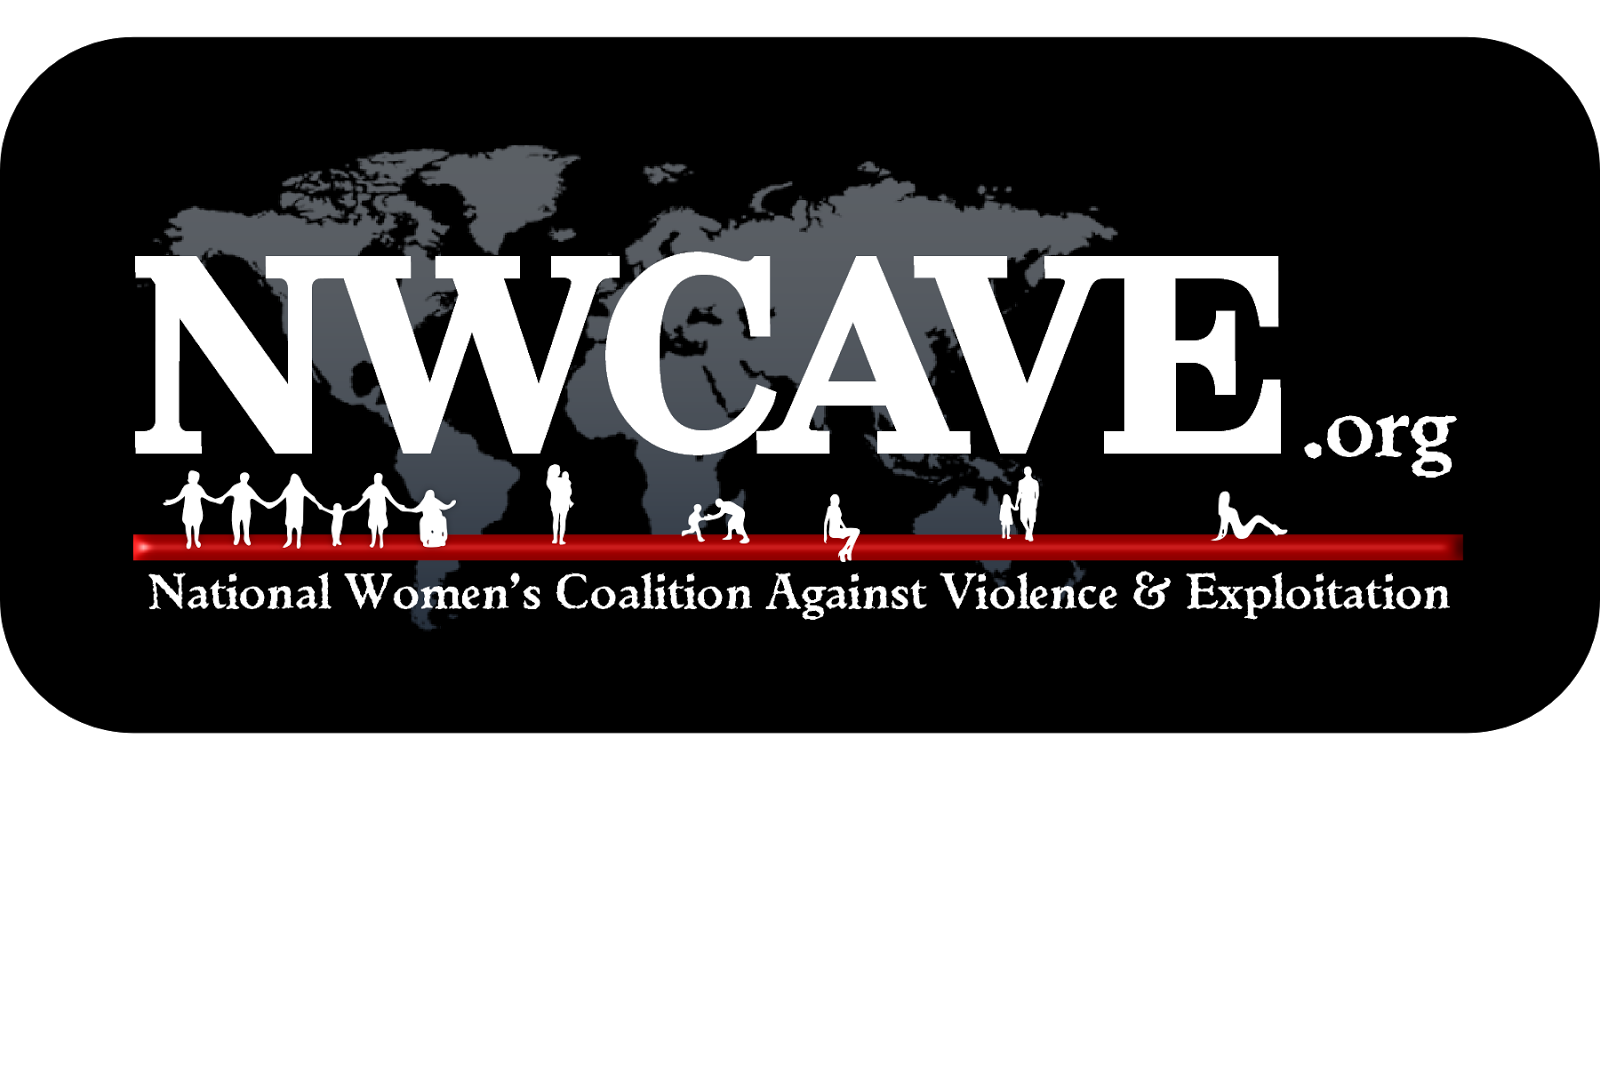 NWCAVE